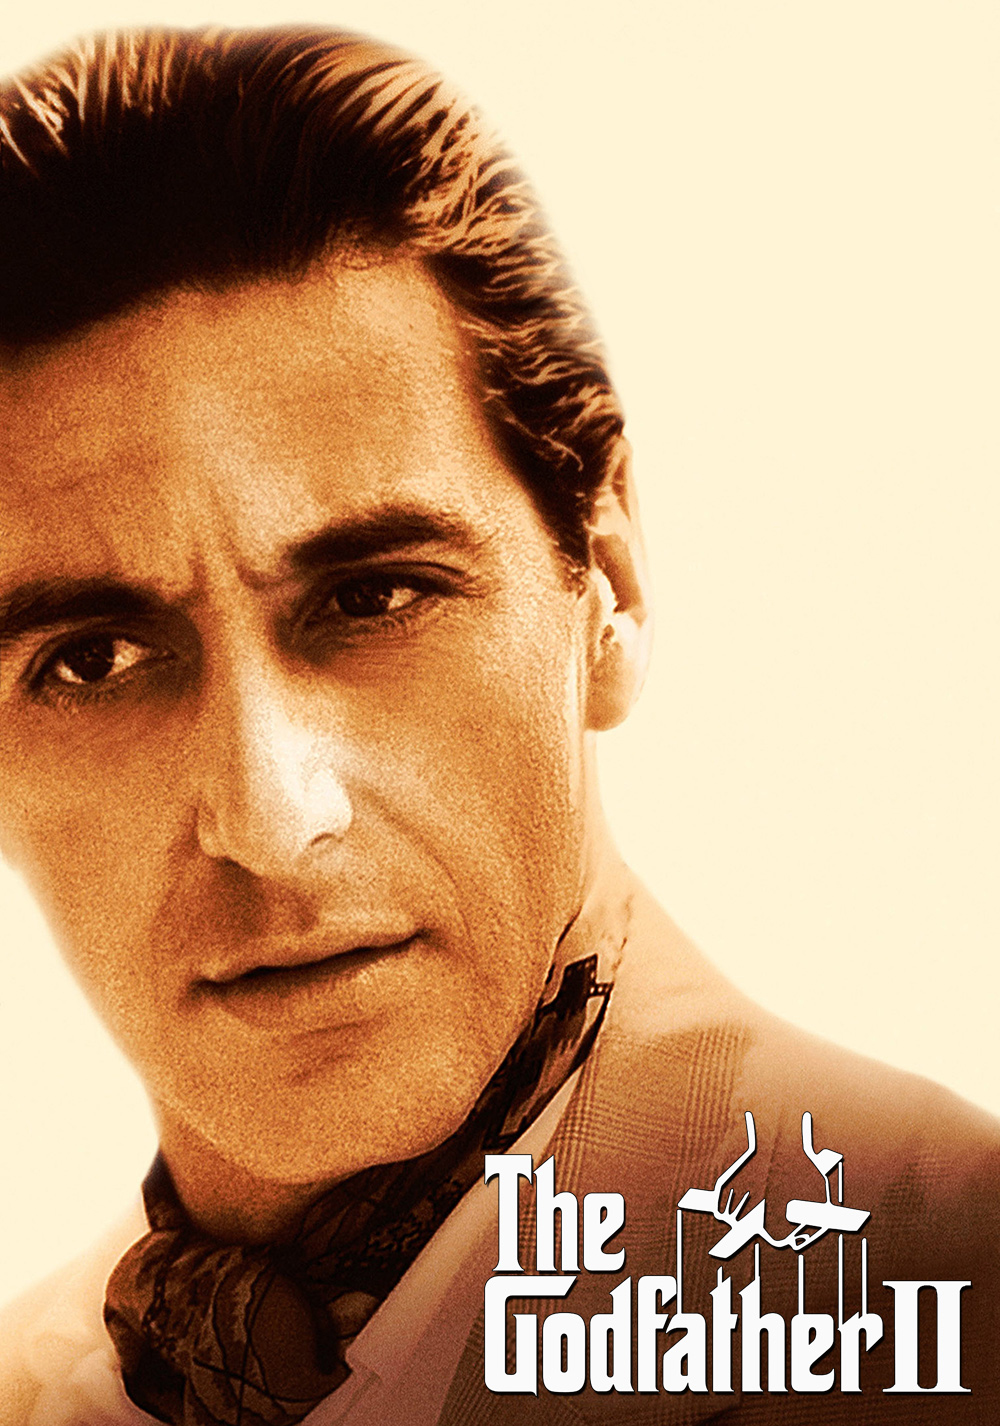 the-godfather-part-ii-522508795edeb